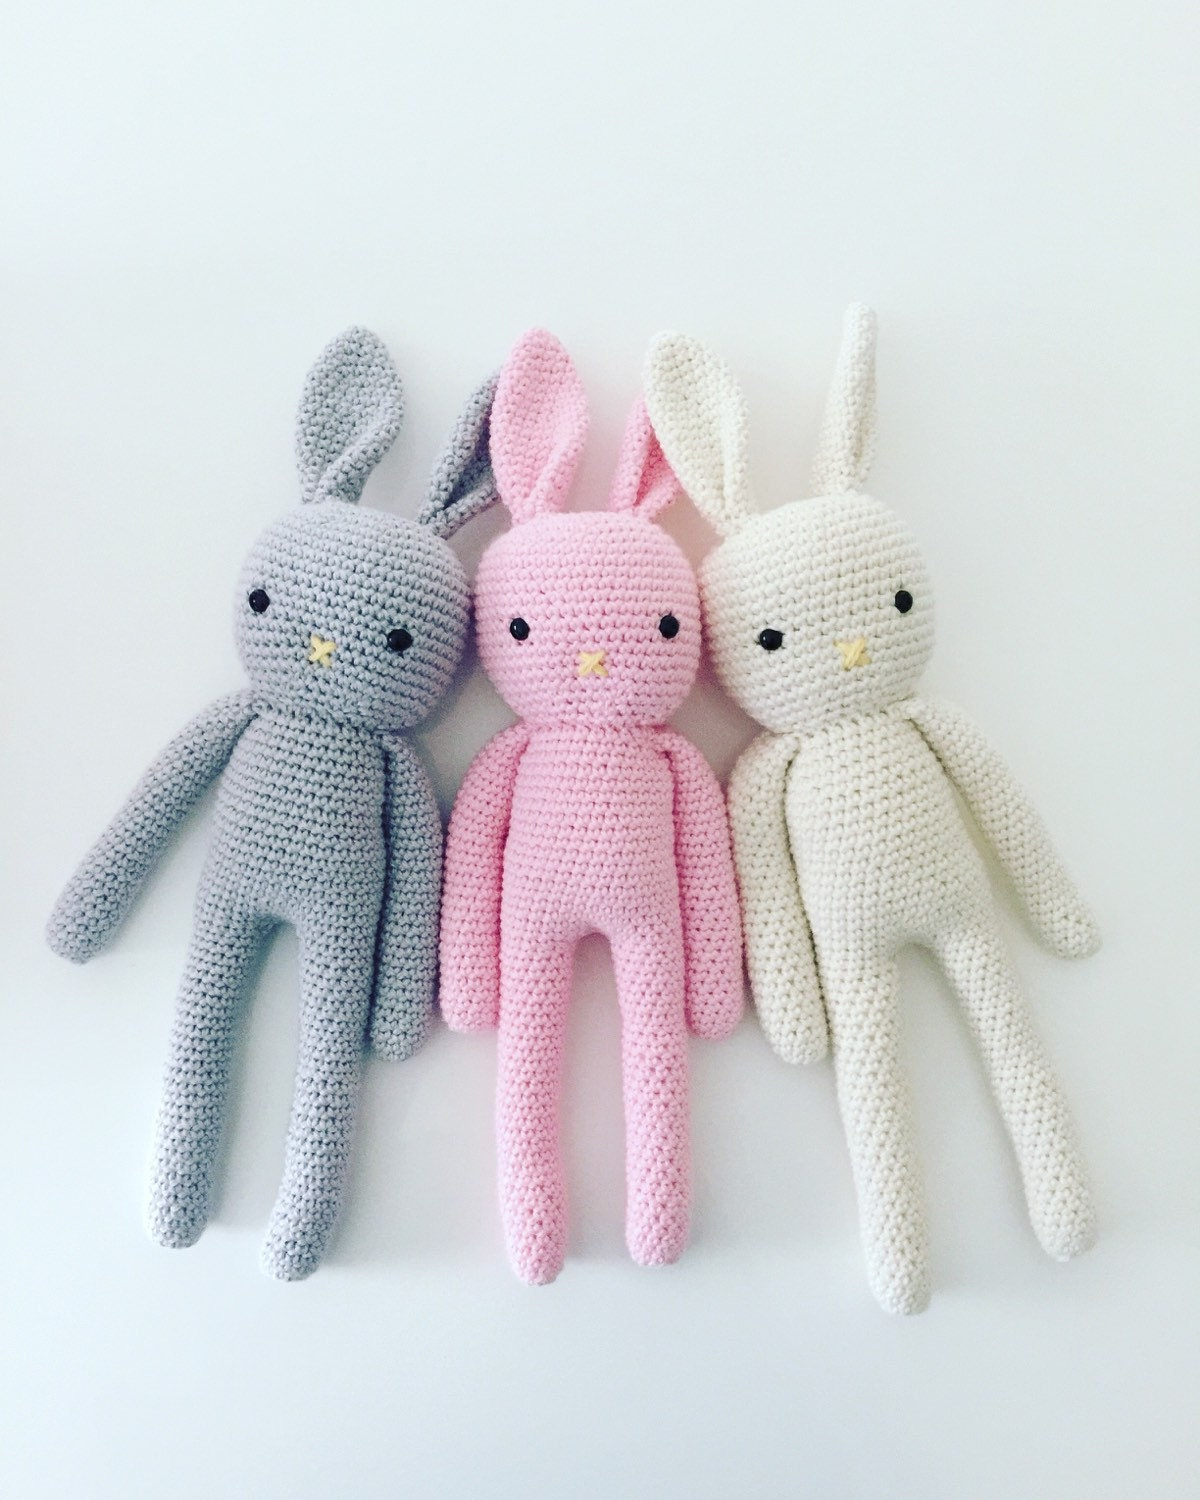 made to order crochet bunny plush toy cotton bunny amigurumi. Black Bedroom Furniture Sets. Home Design Ideas